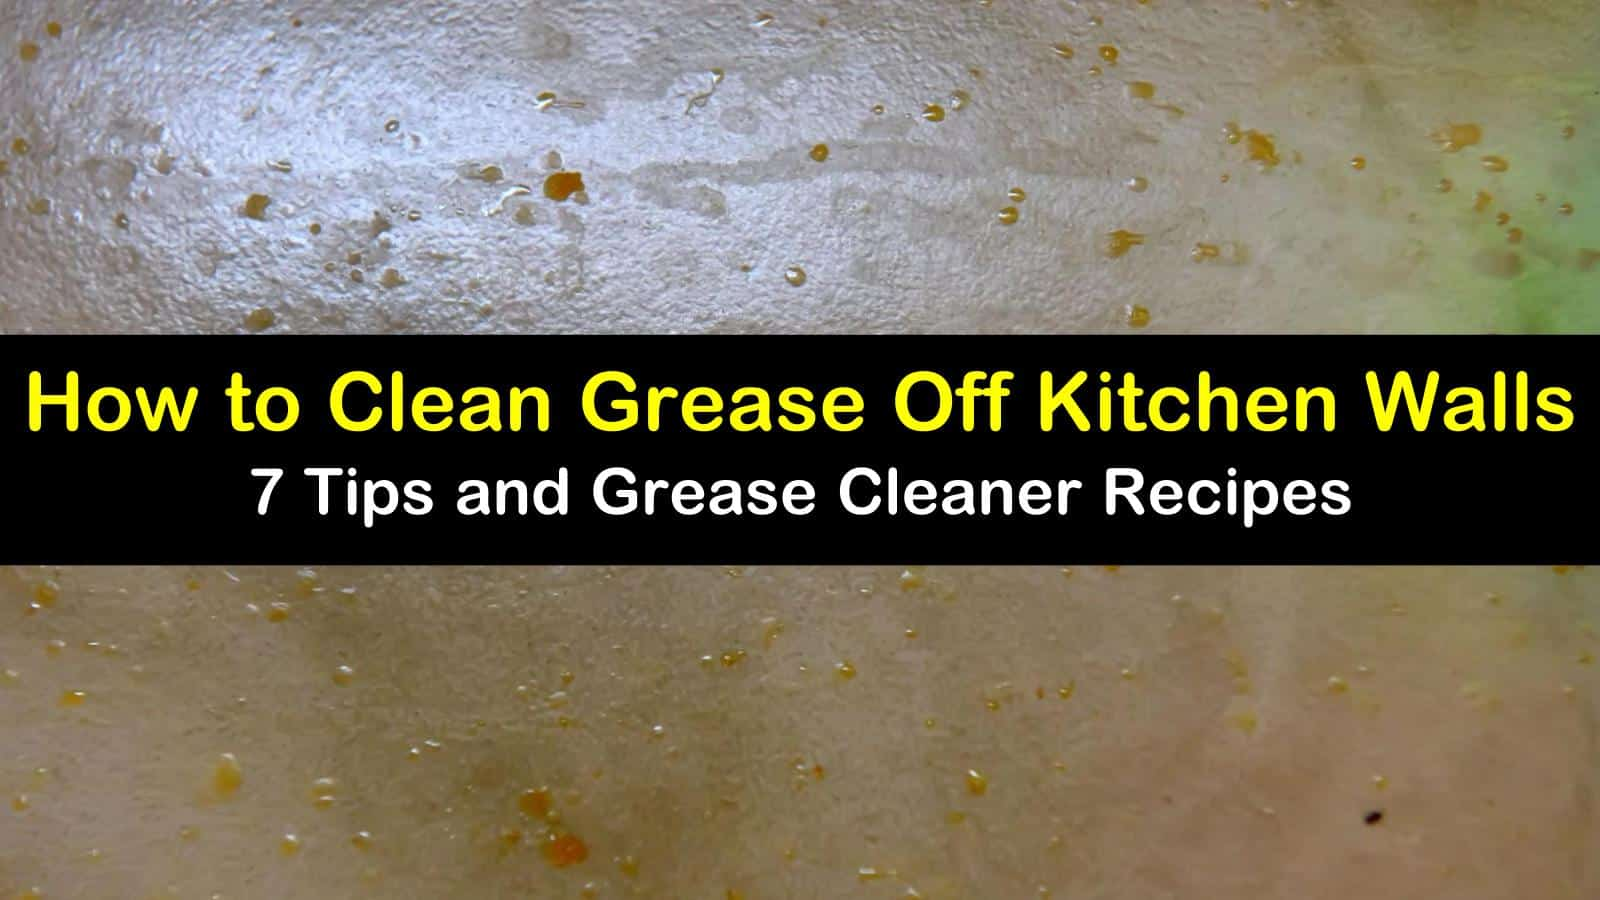 how to clean grease off kitchen walls titleimg1